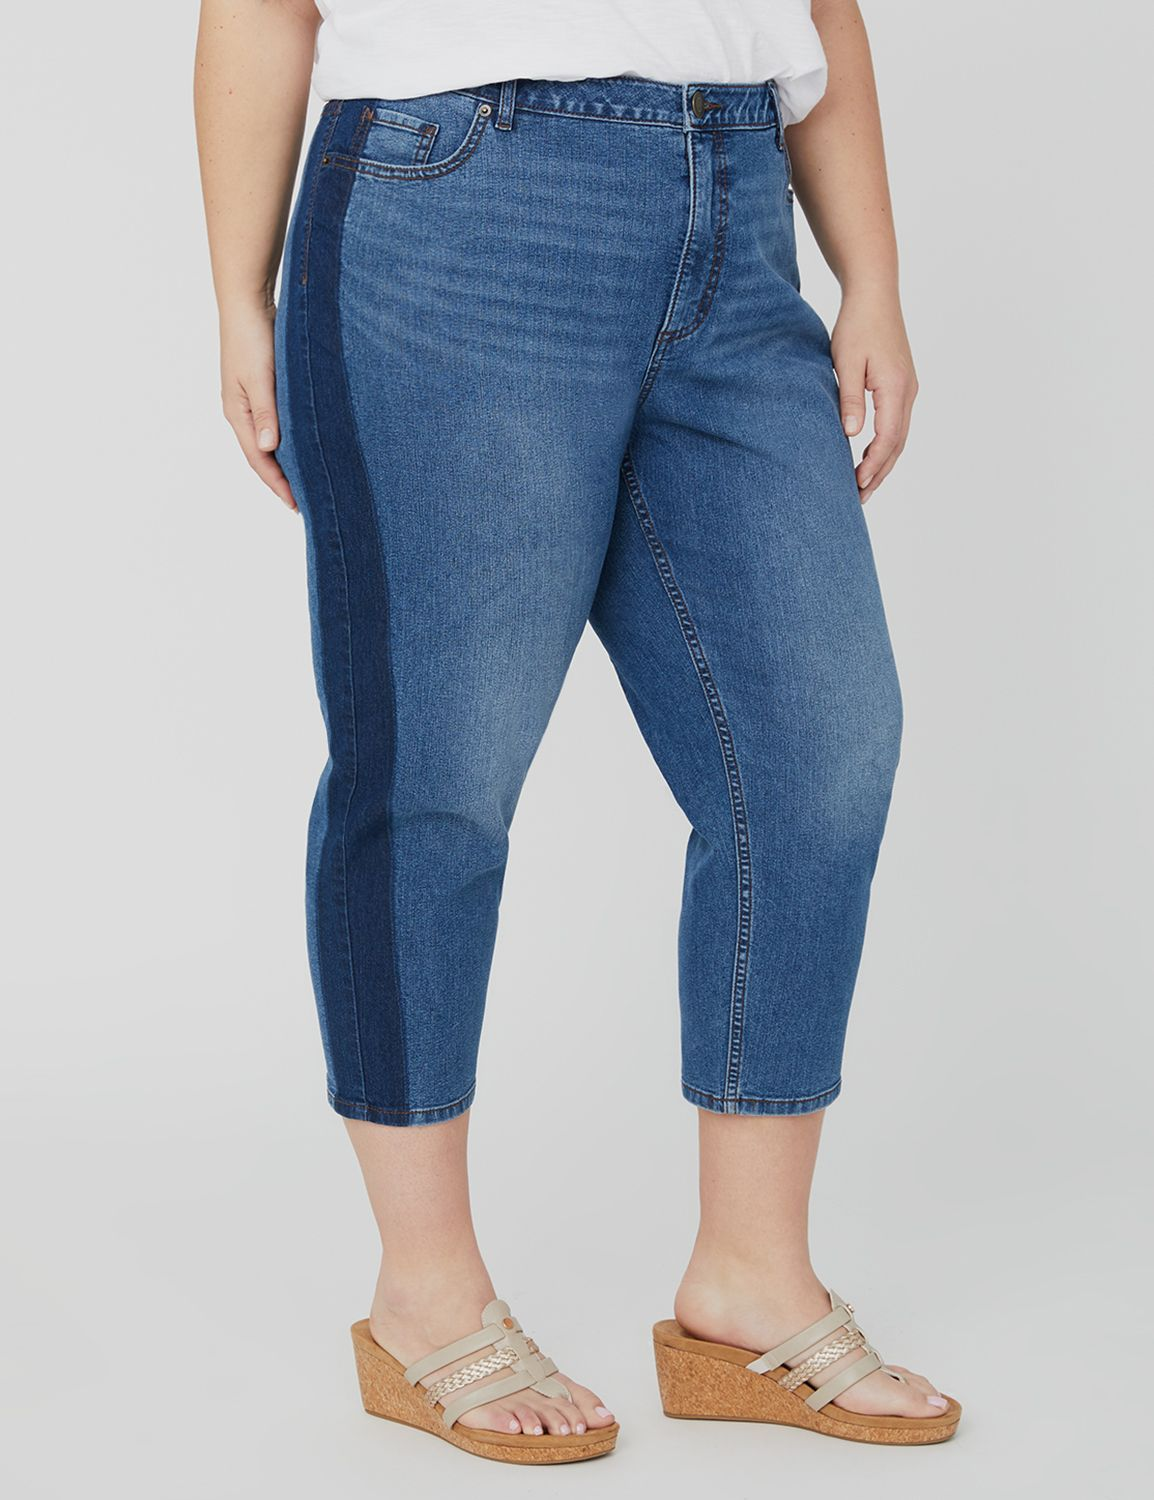 Jean Capri with Dark-Wash Stripe 1088046 2-TONE DENIM WASH ON SIDE S MP-300099571